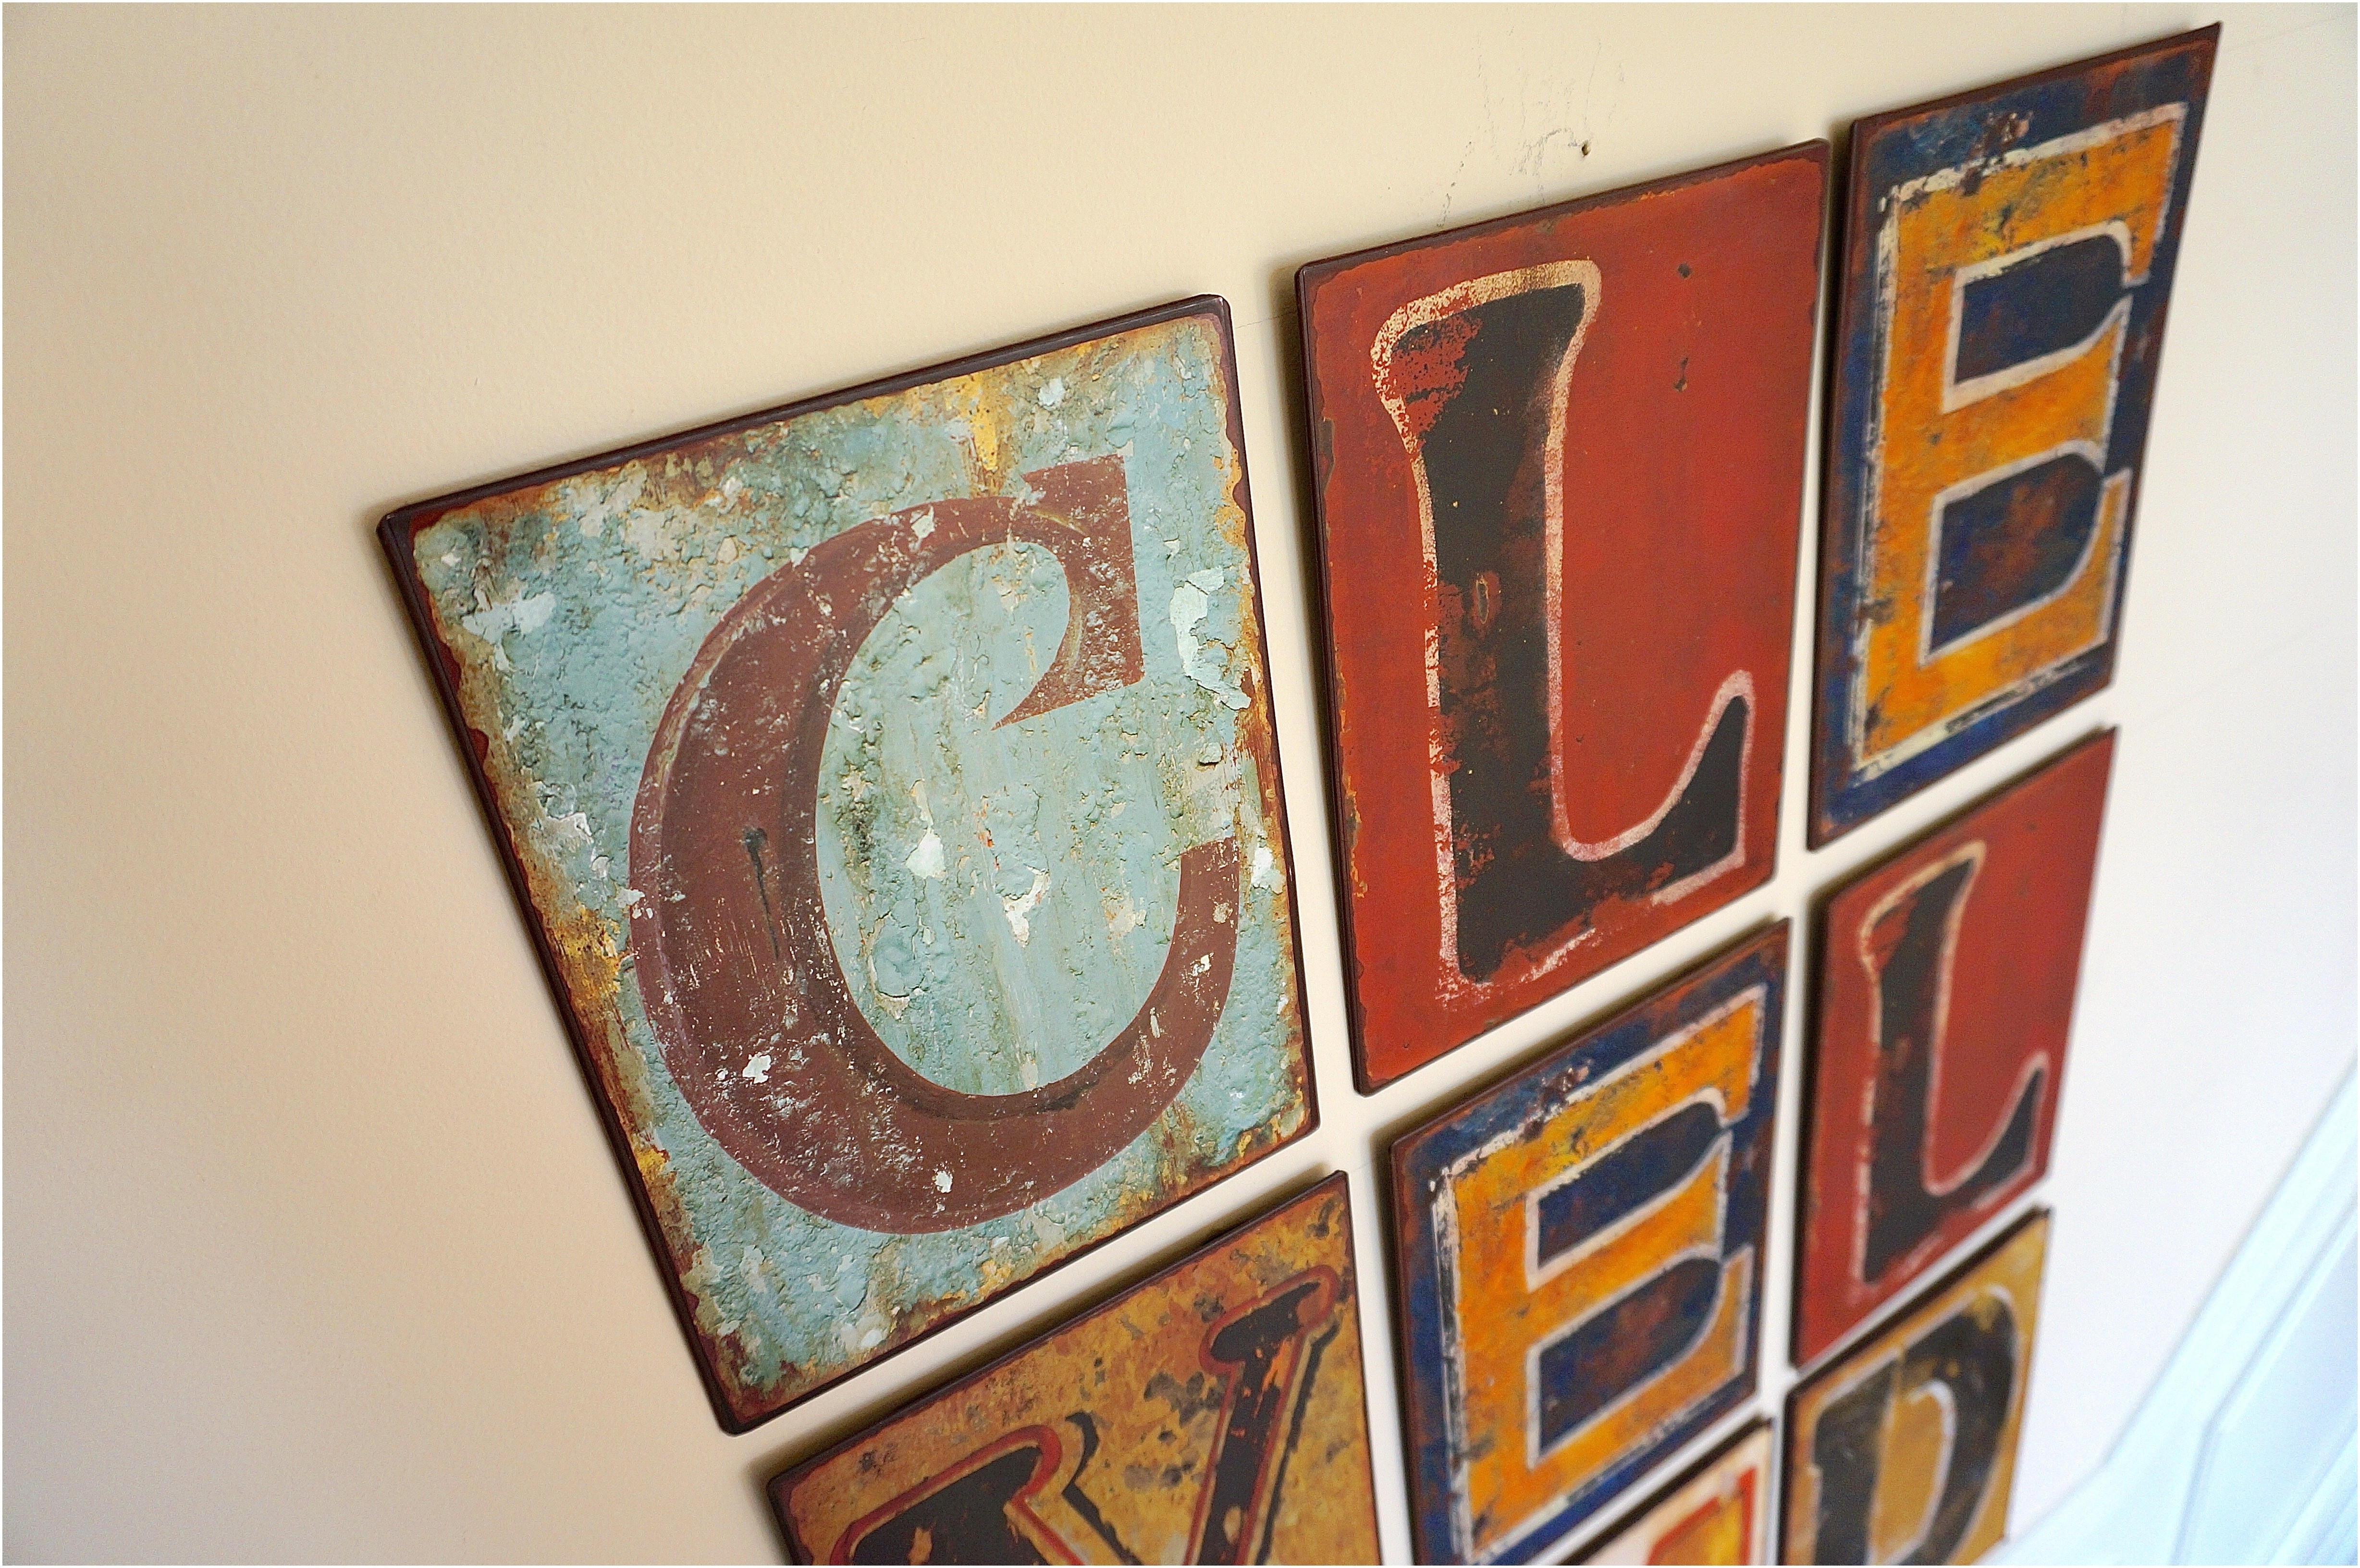 Metal Wall Letters Metal Letter Wall Art – Careyhead With Regard To Most Up To Date Letter Wall Art (View 2 of 20)